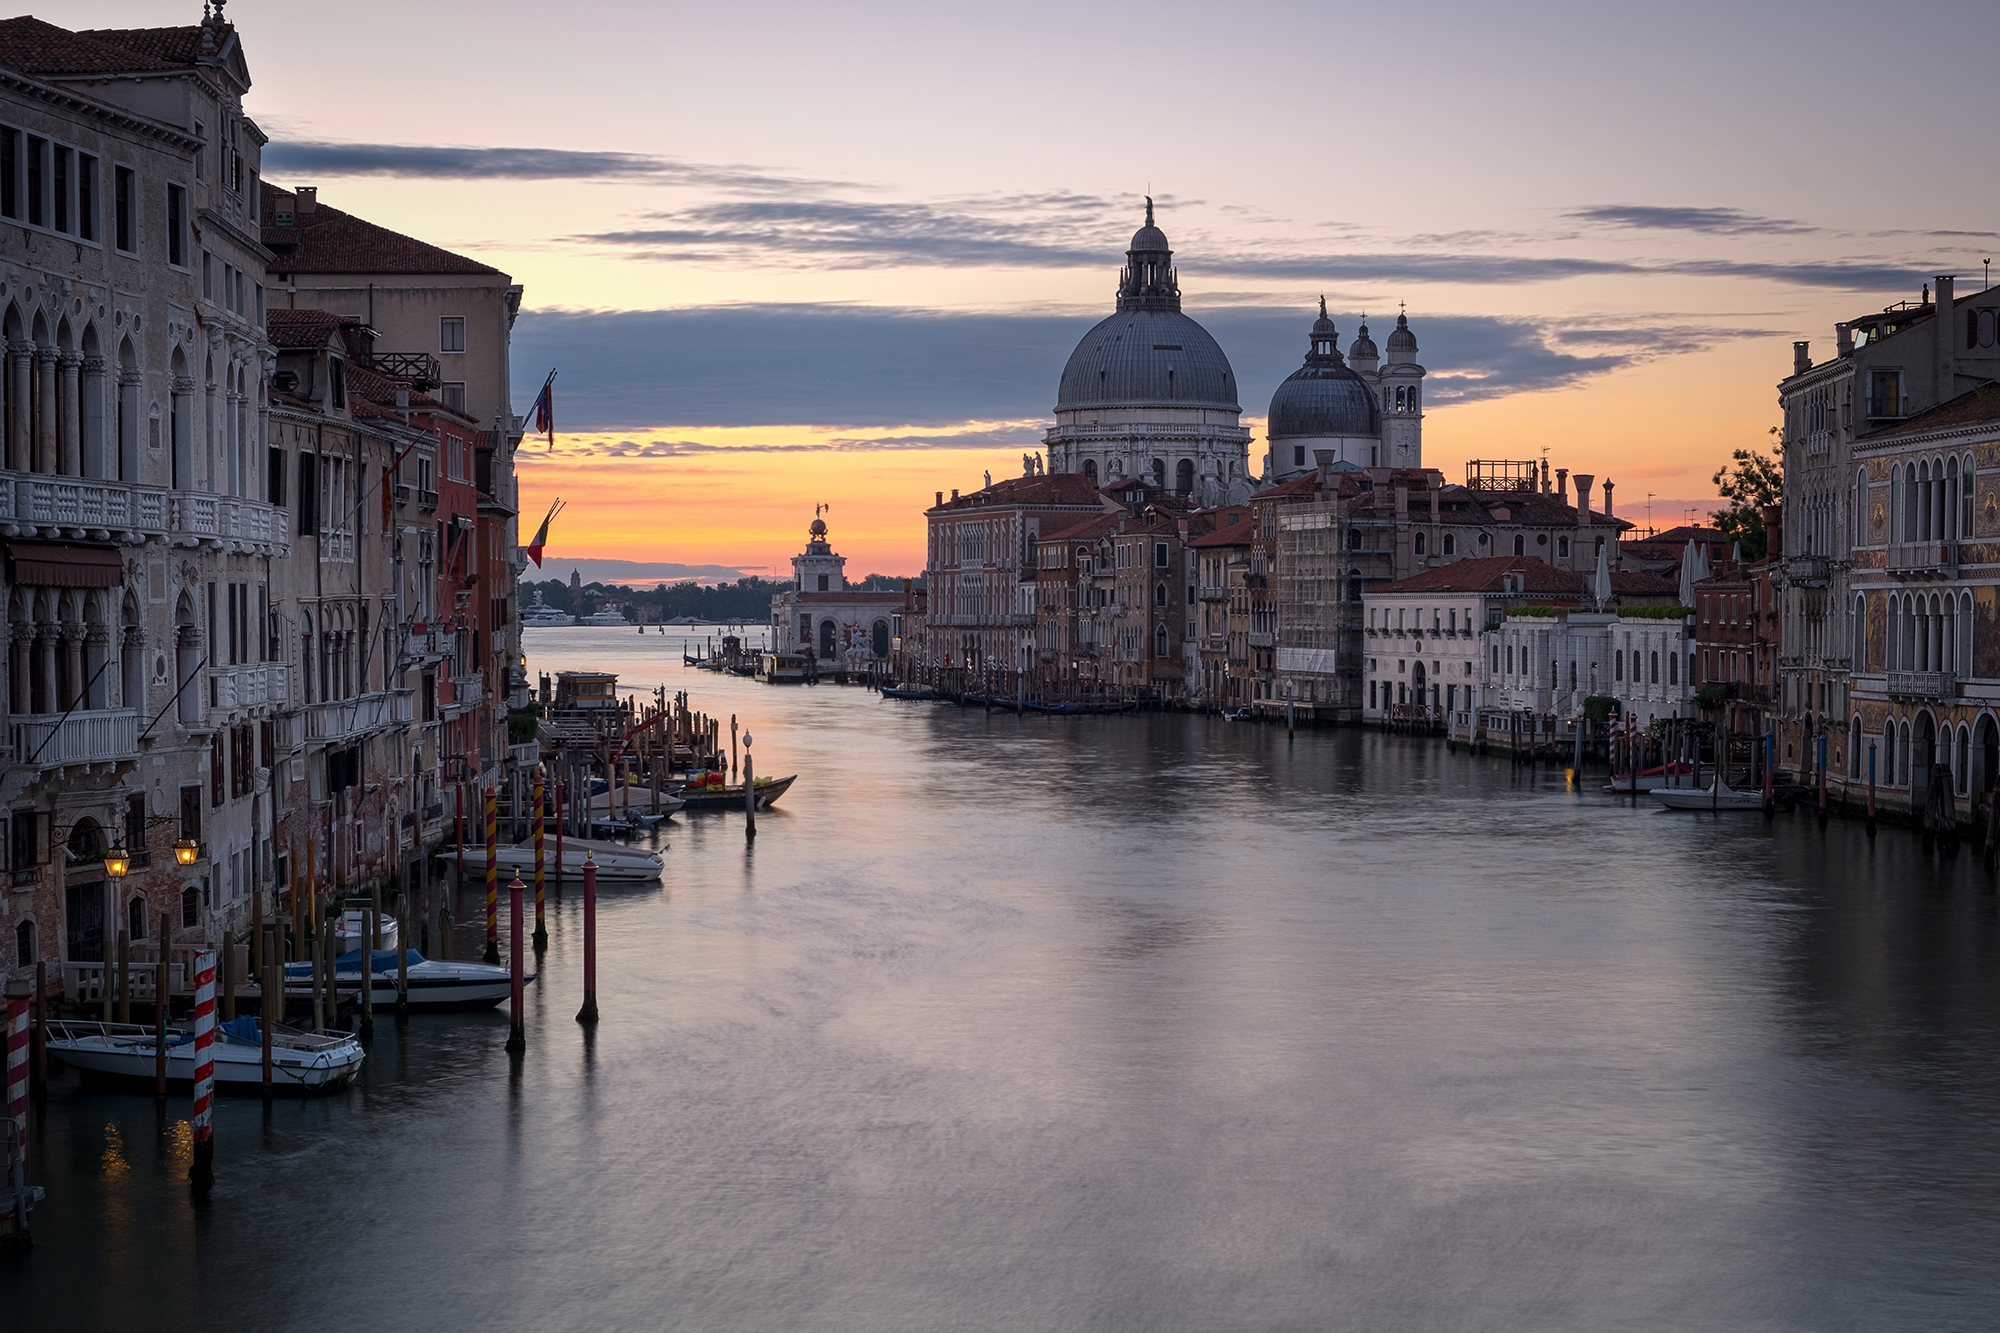 A photo of the Grand Canal at sunrise in Venice taken by Trevor Sherwin